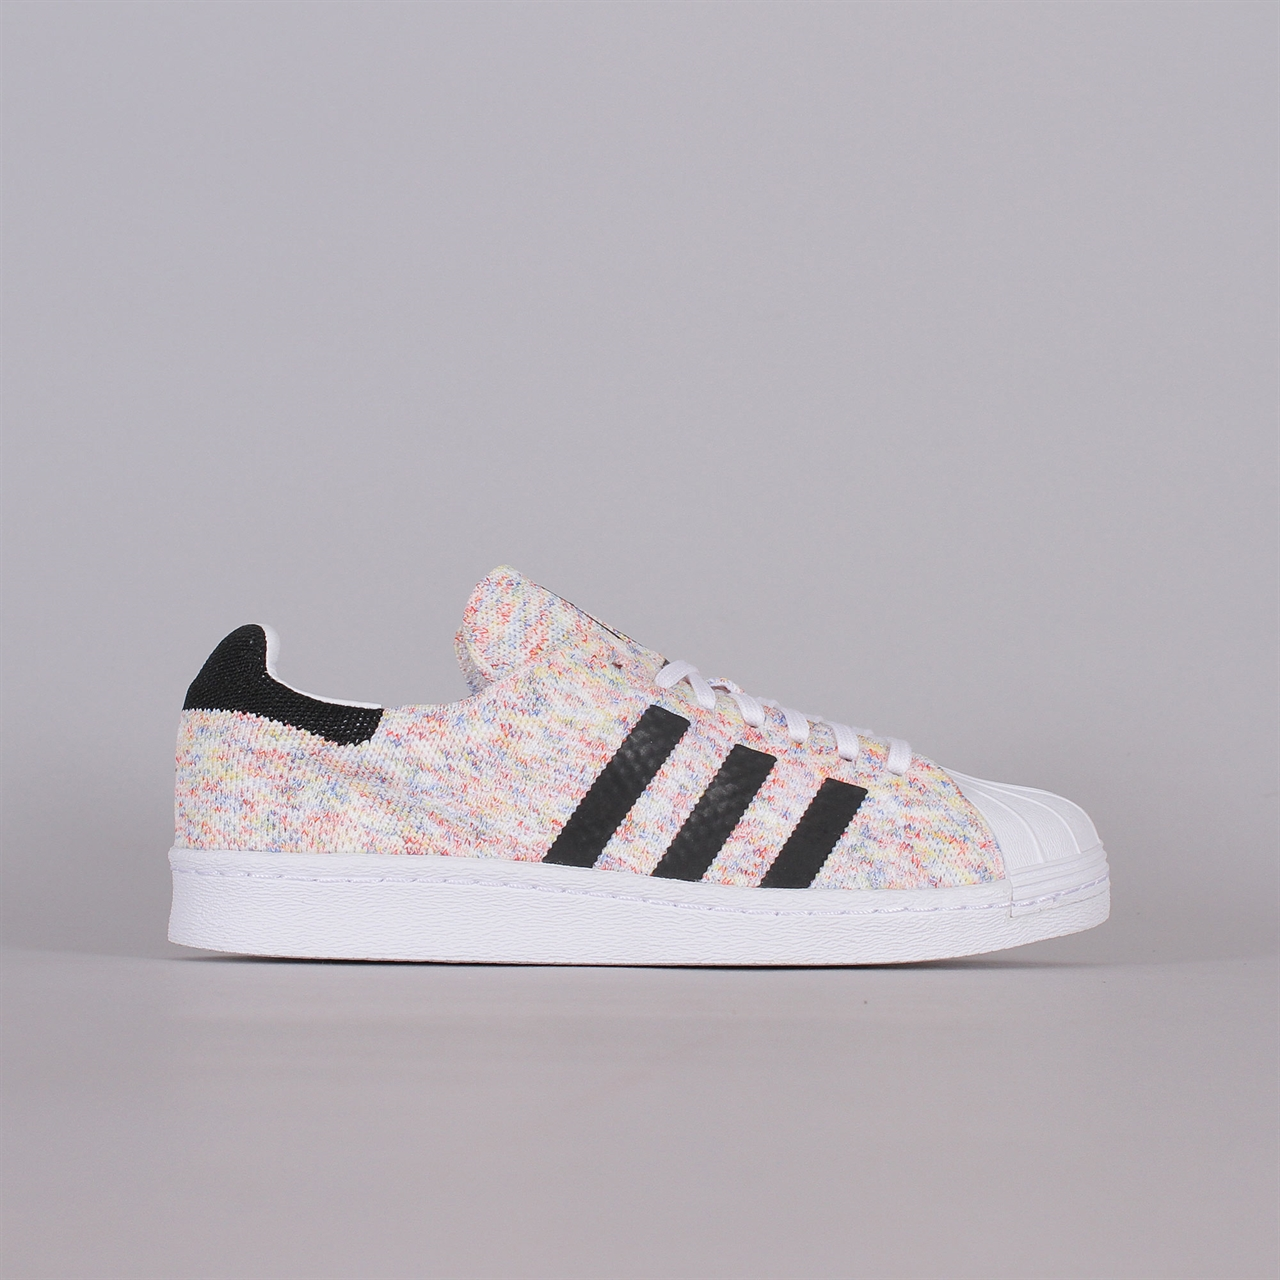 los angeles 53dcd 4be69 Superstar 80s Primeknit (S75845)